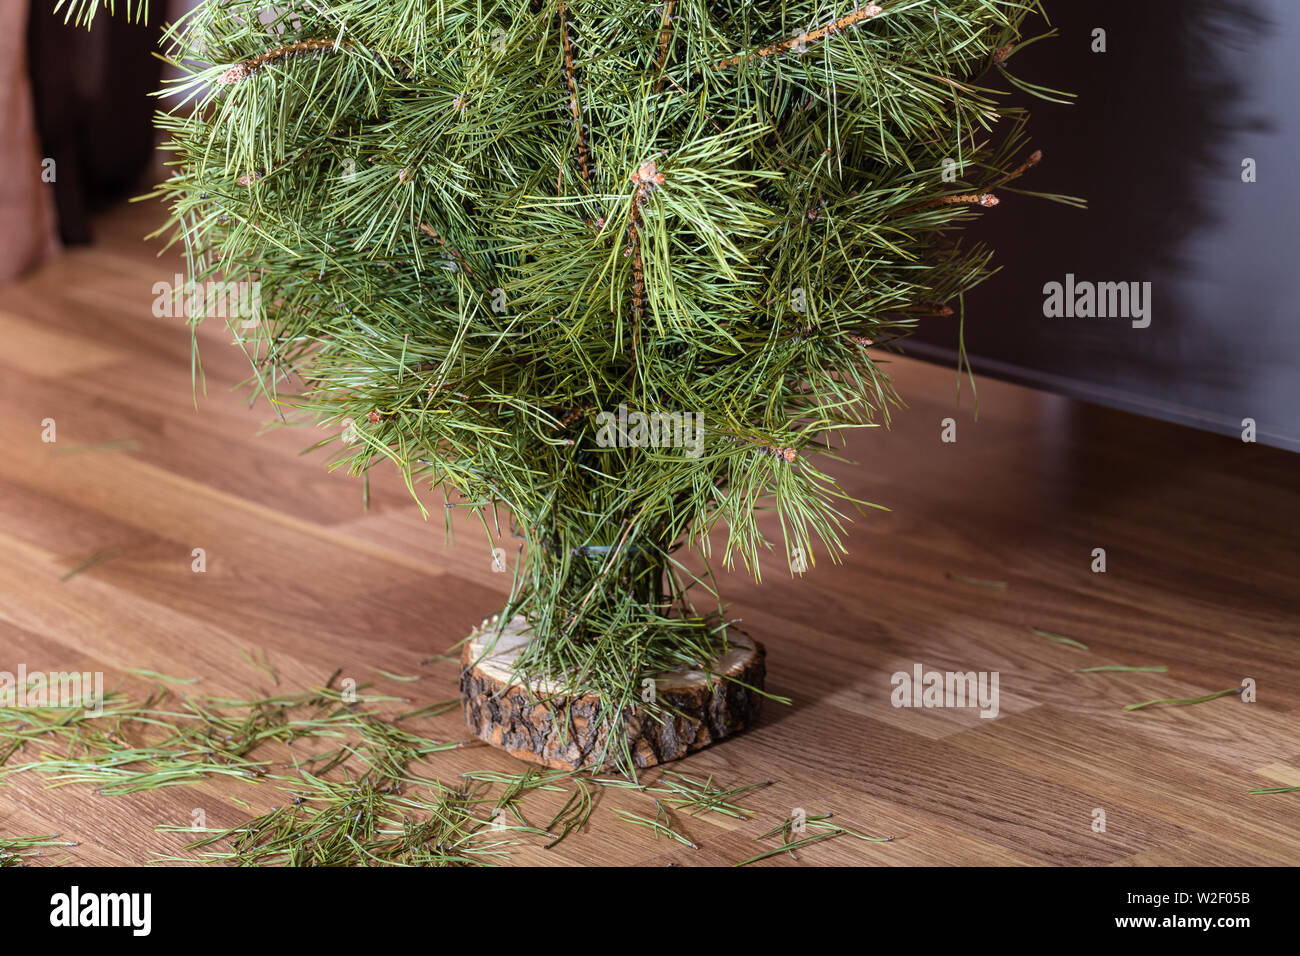 Christmas tree stands on the floor among the garbage of needles. - Stock Image